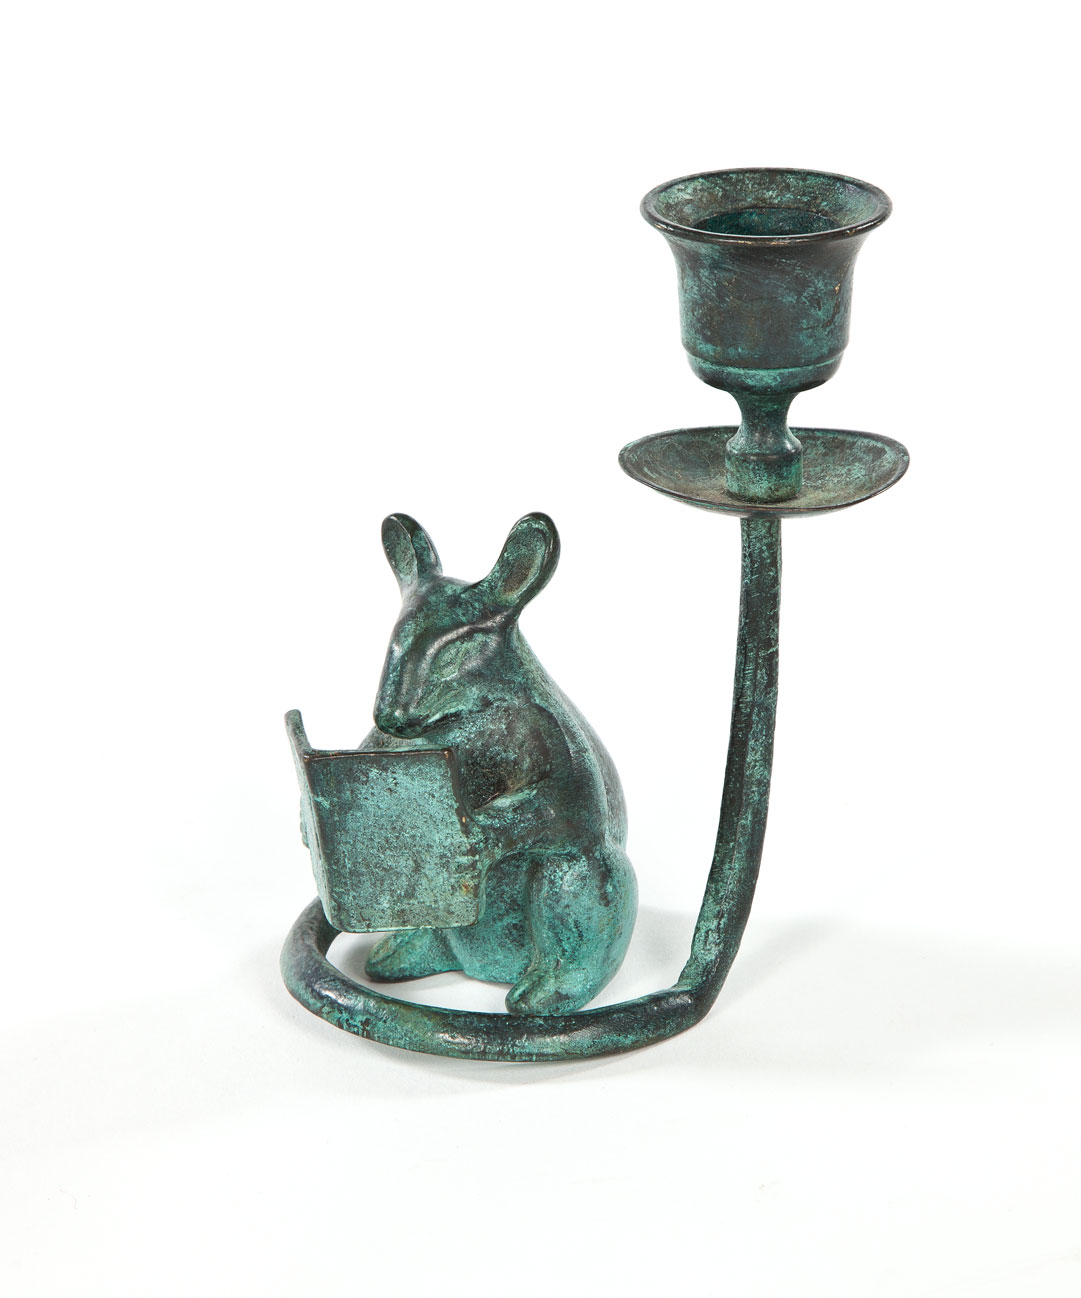 Mouse Candlestick Holder